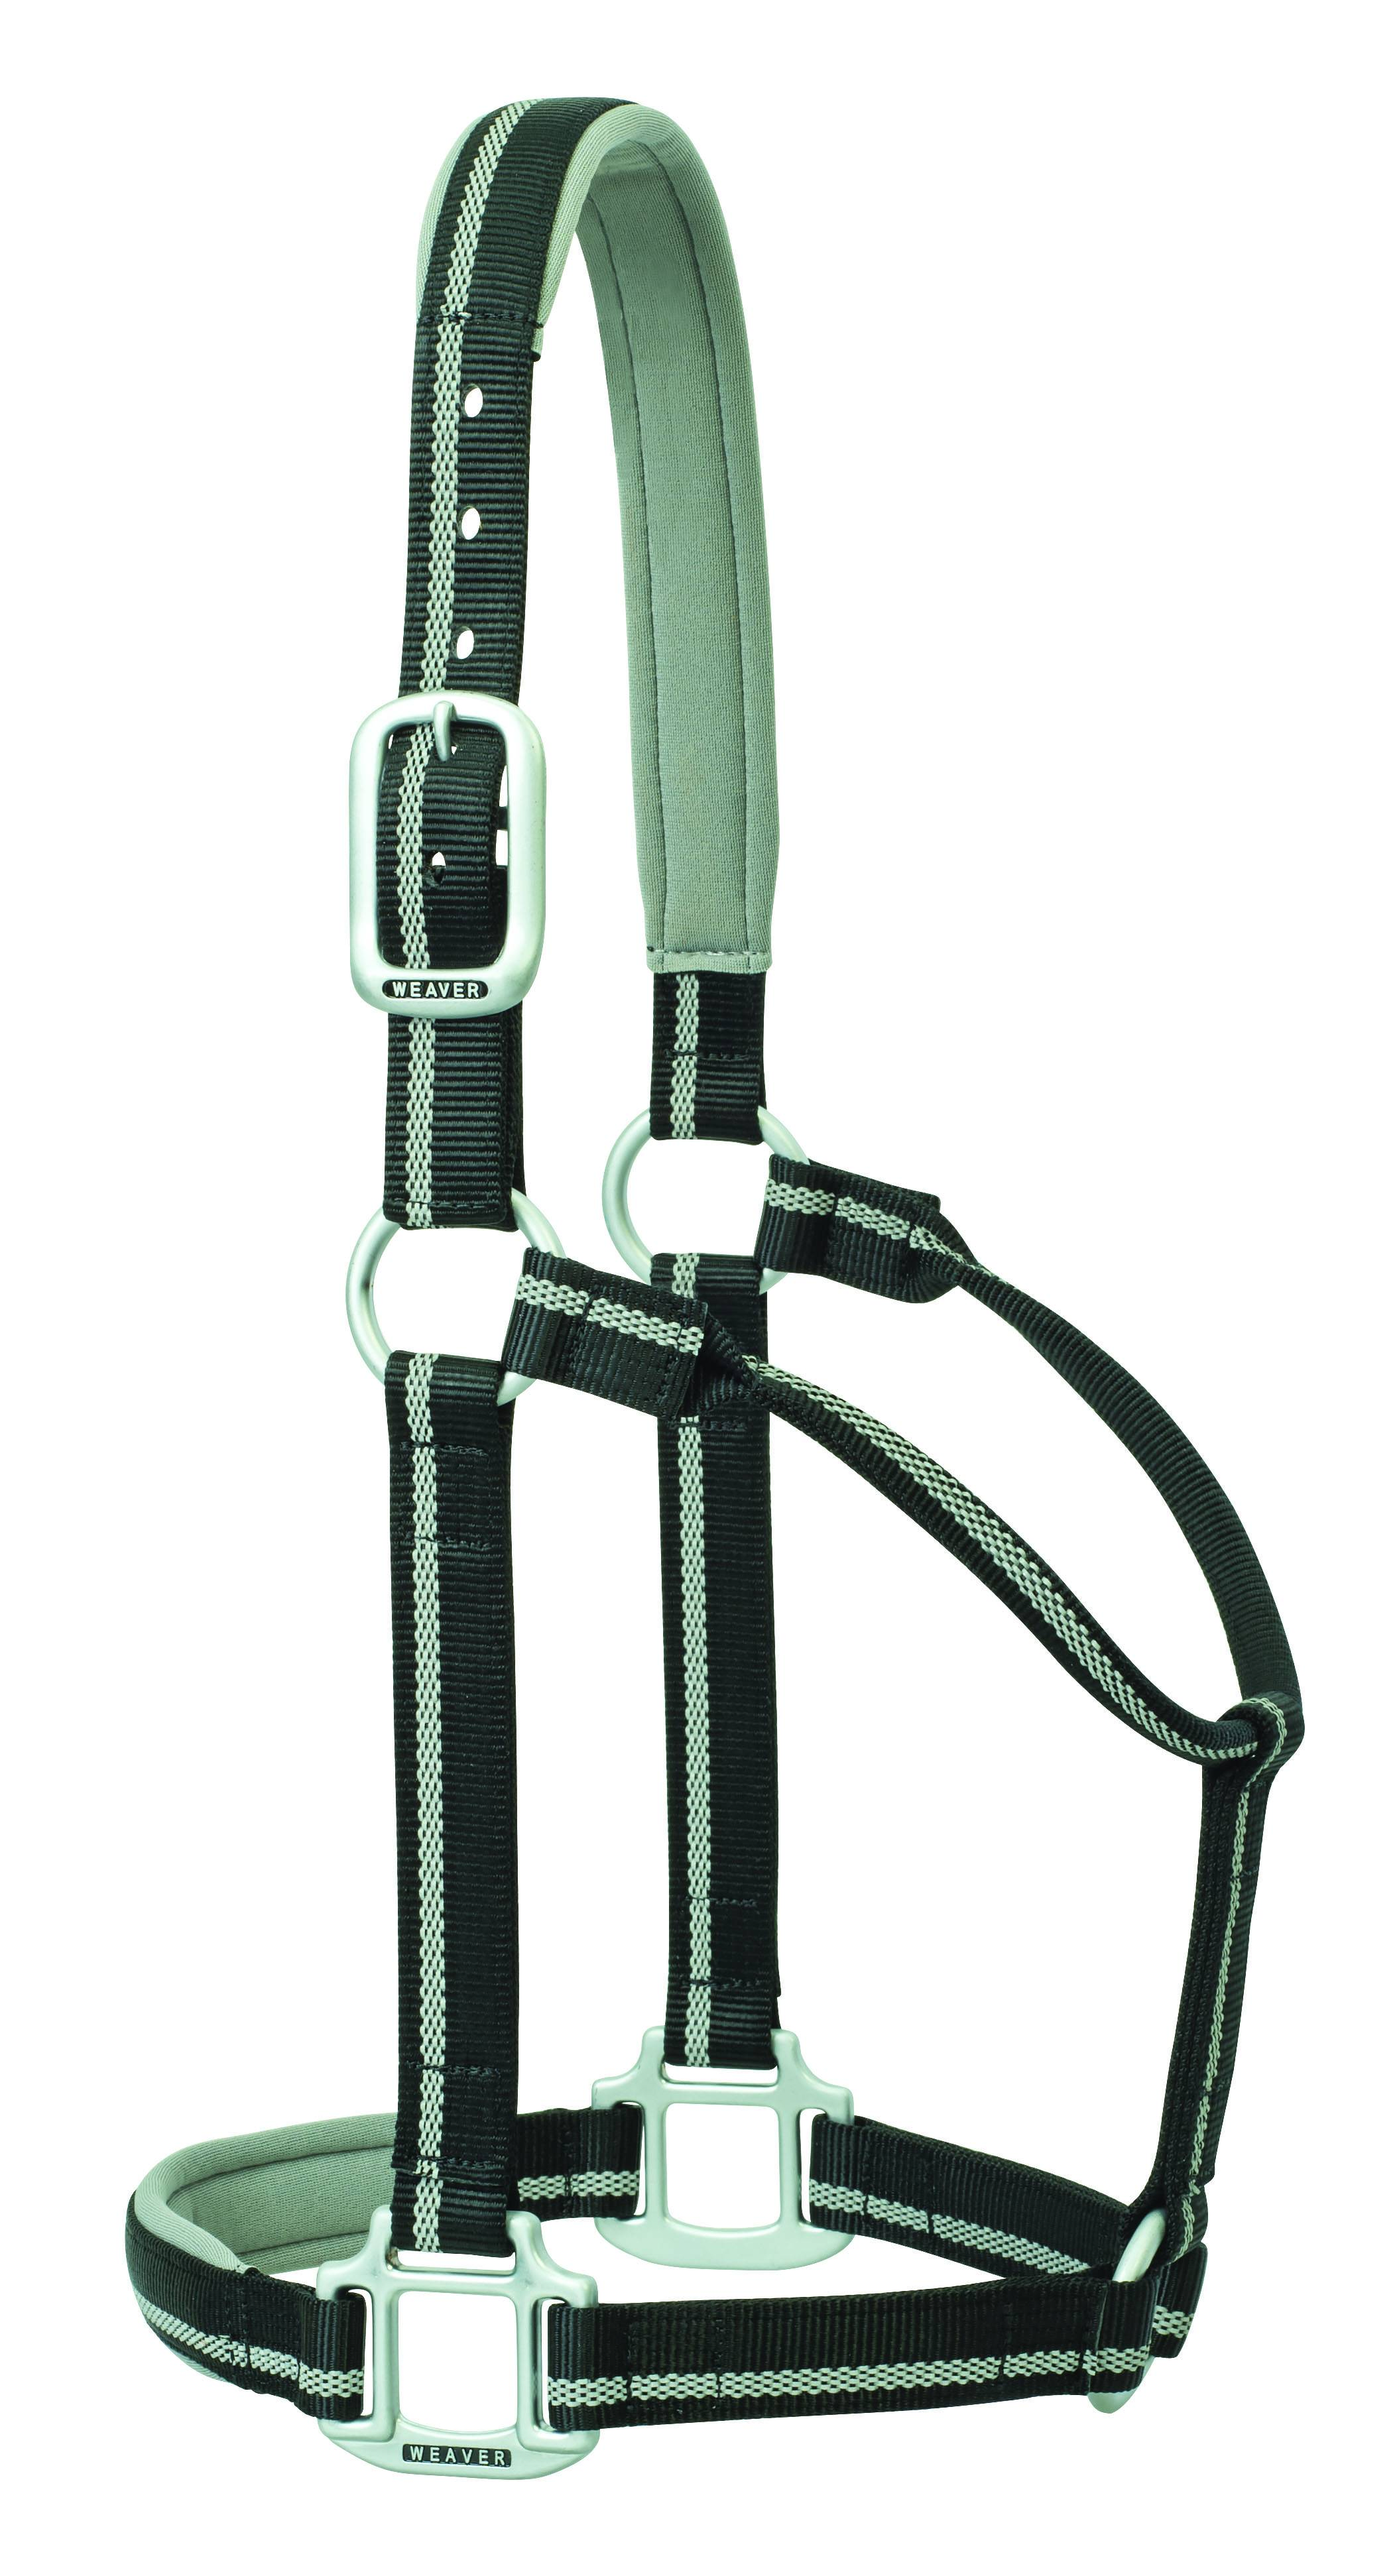 Weaver Nylon Padded Reflective Non-Adjustable Horse Halter